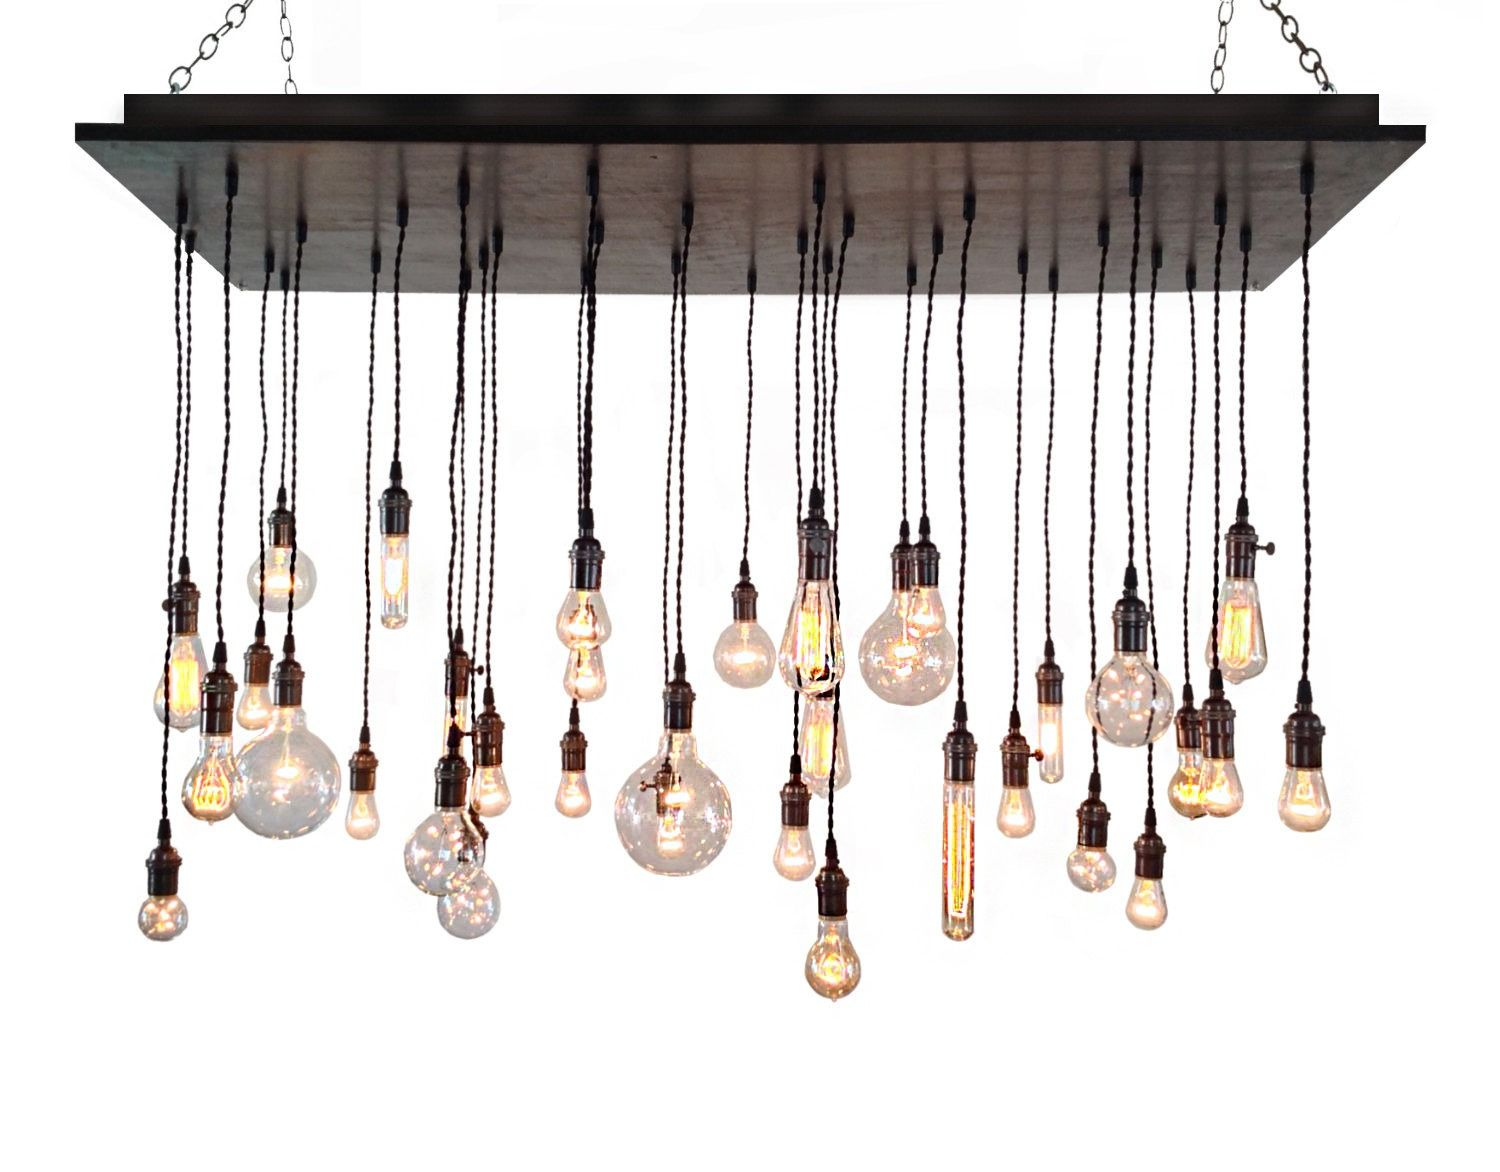 Over Sized Rustic Style Chandelier Rustic Chandelier Rustic Lighting Industrial Chandelier